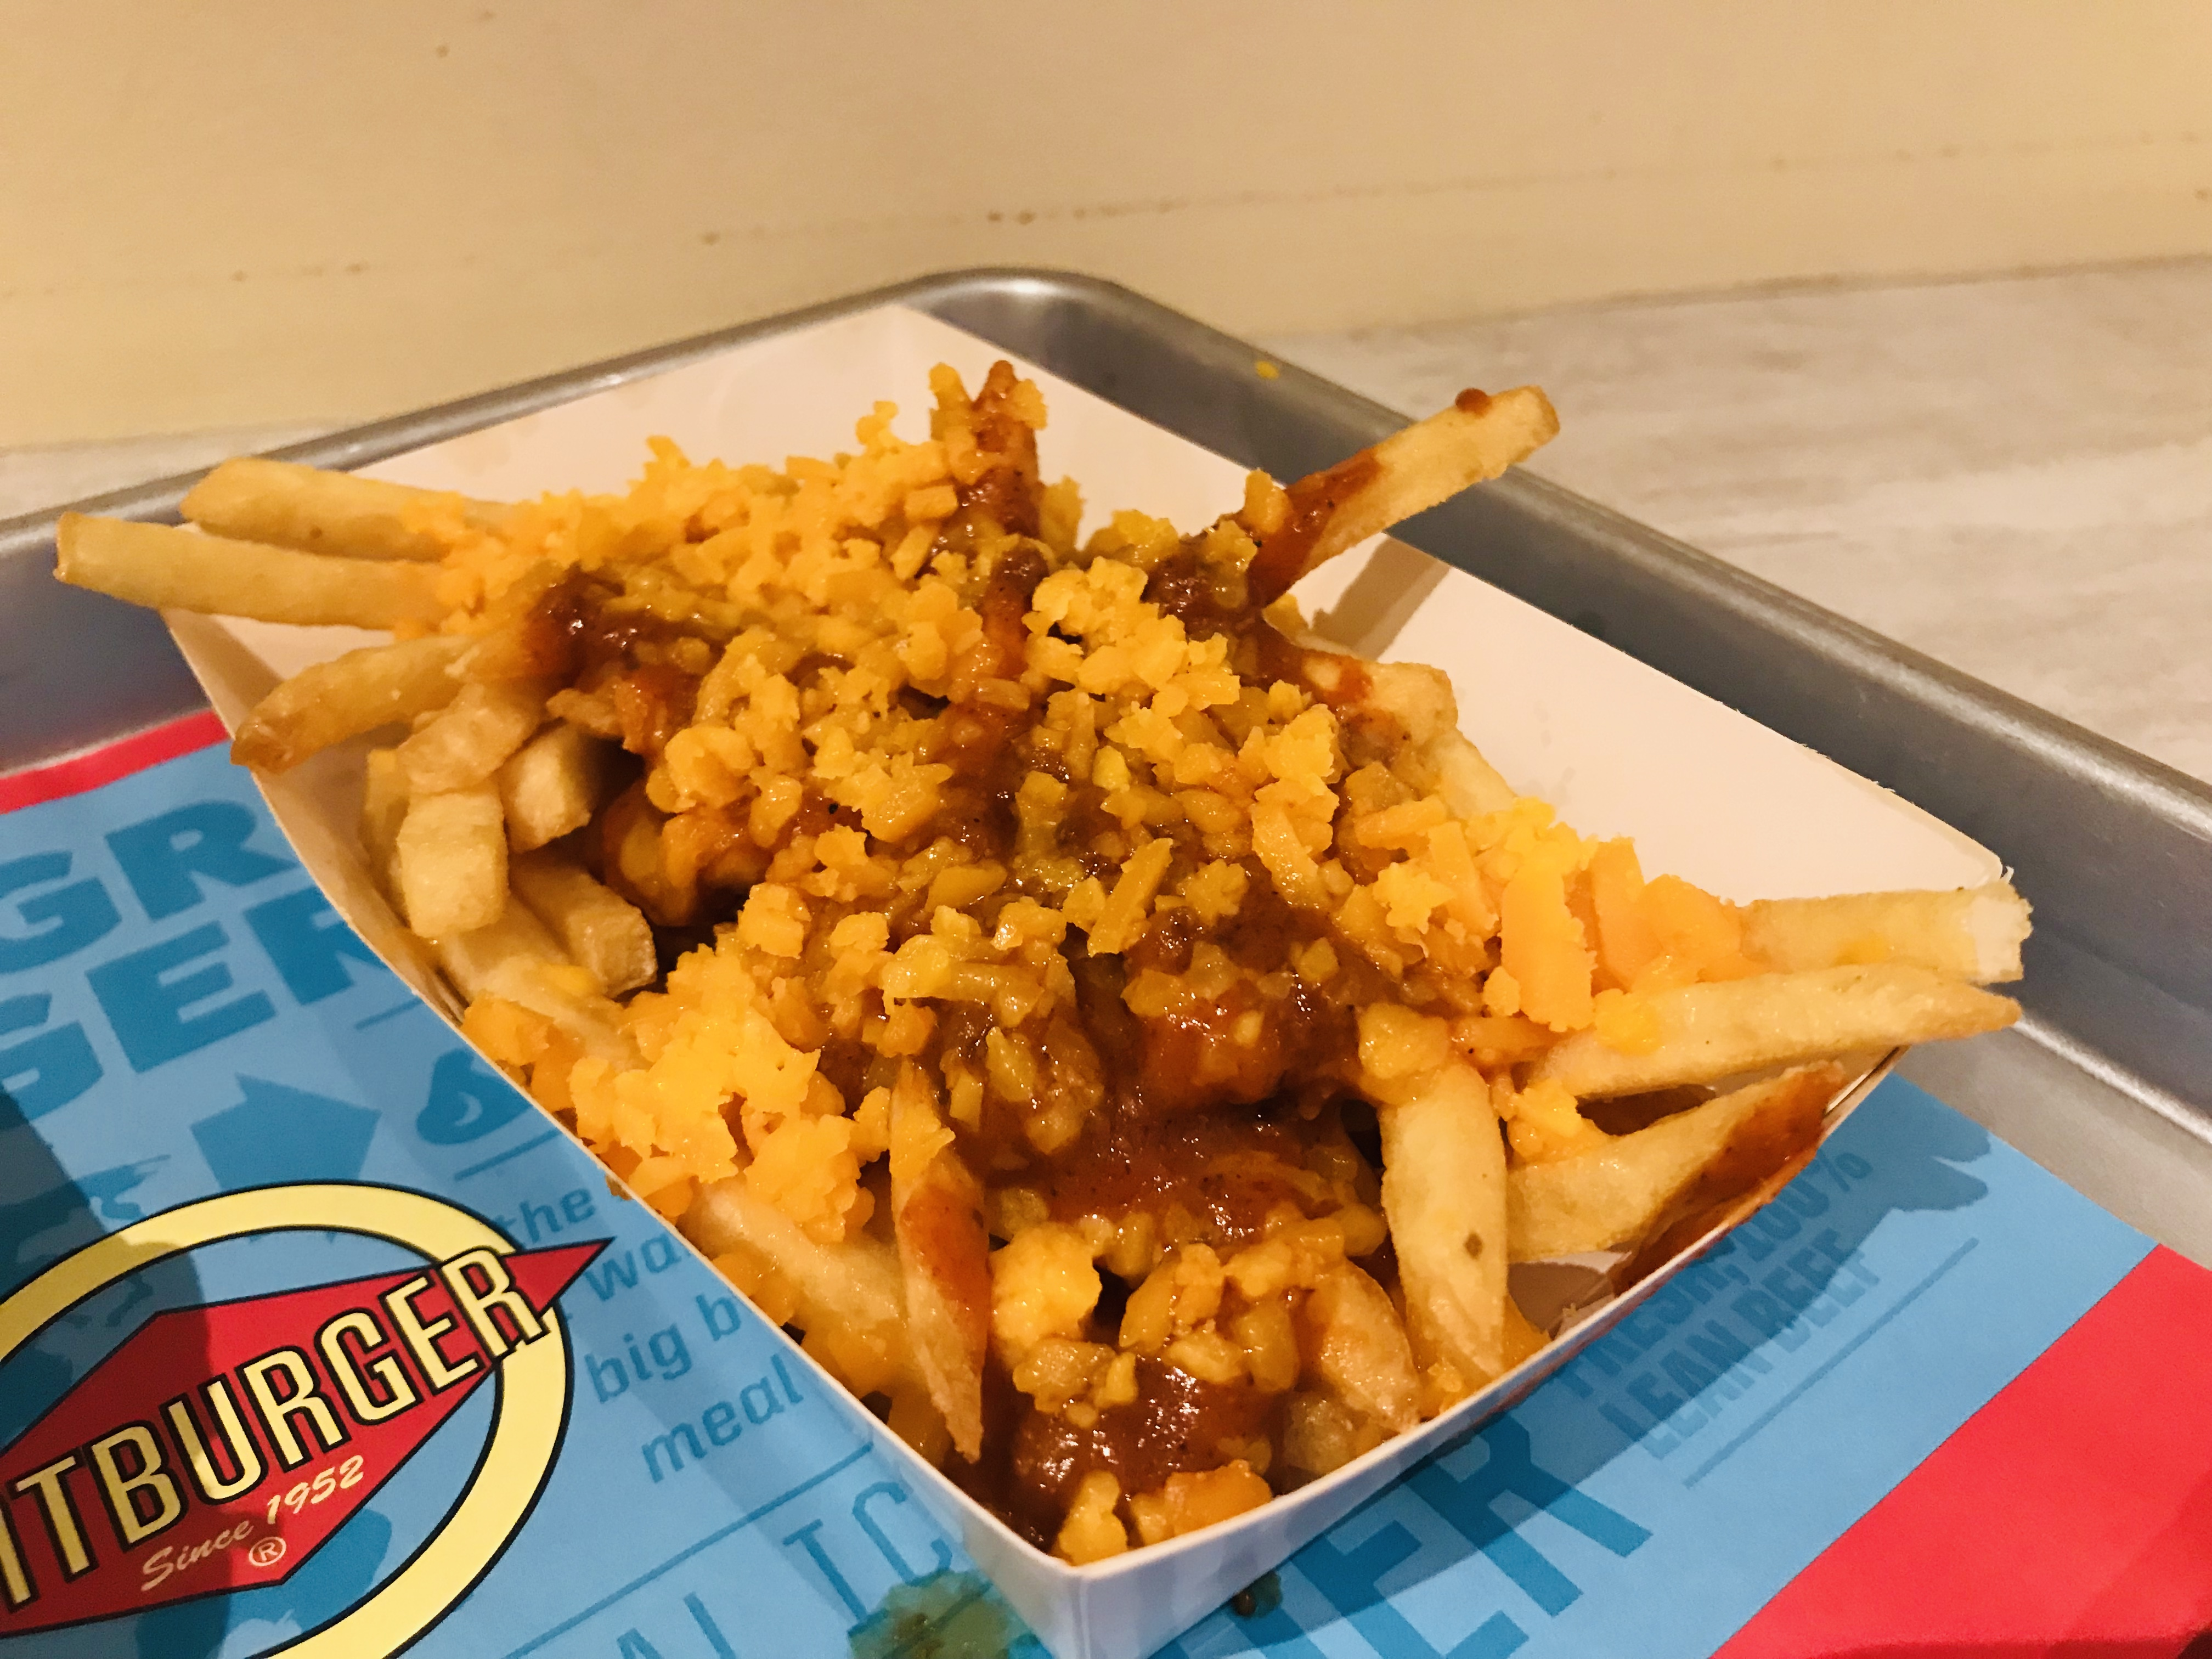 Fatburger - Chilli Cheese Fries